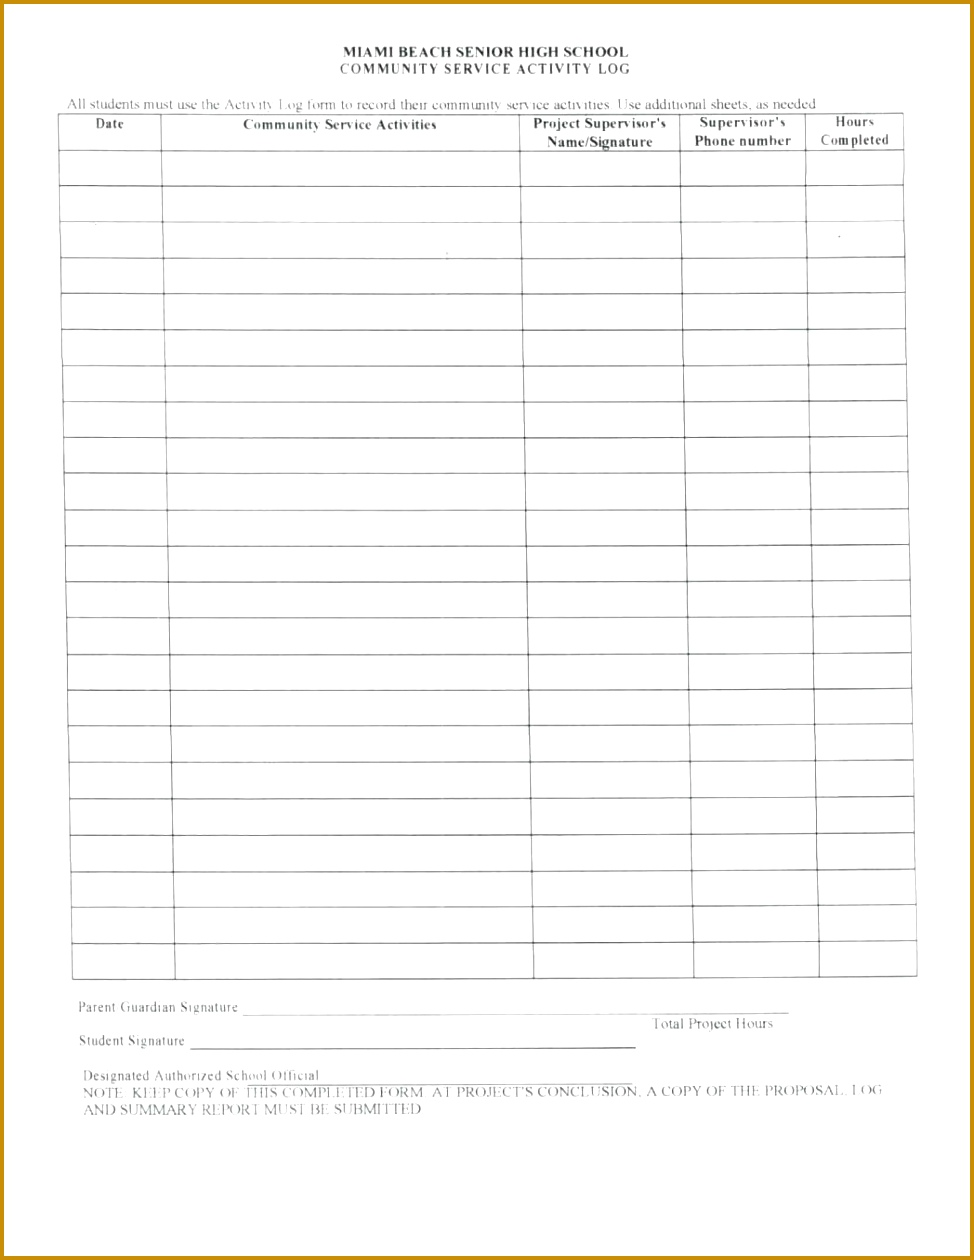 Volunteer Log Sheet Template Eliolera Academy Hospitality And Tourism munity Service Sheet Hours Form Palm Beach County Adv For Bright Futures 1260974